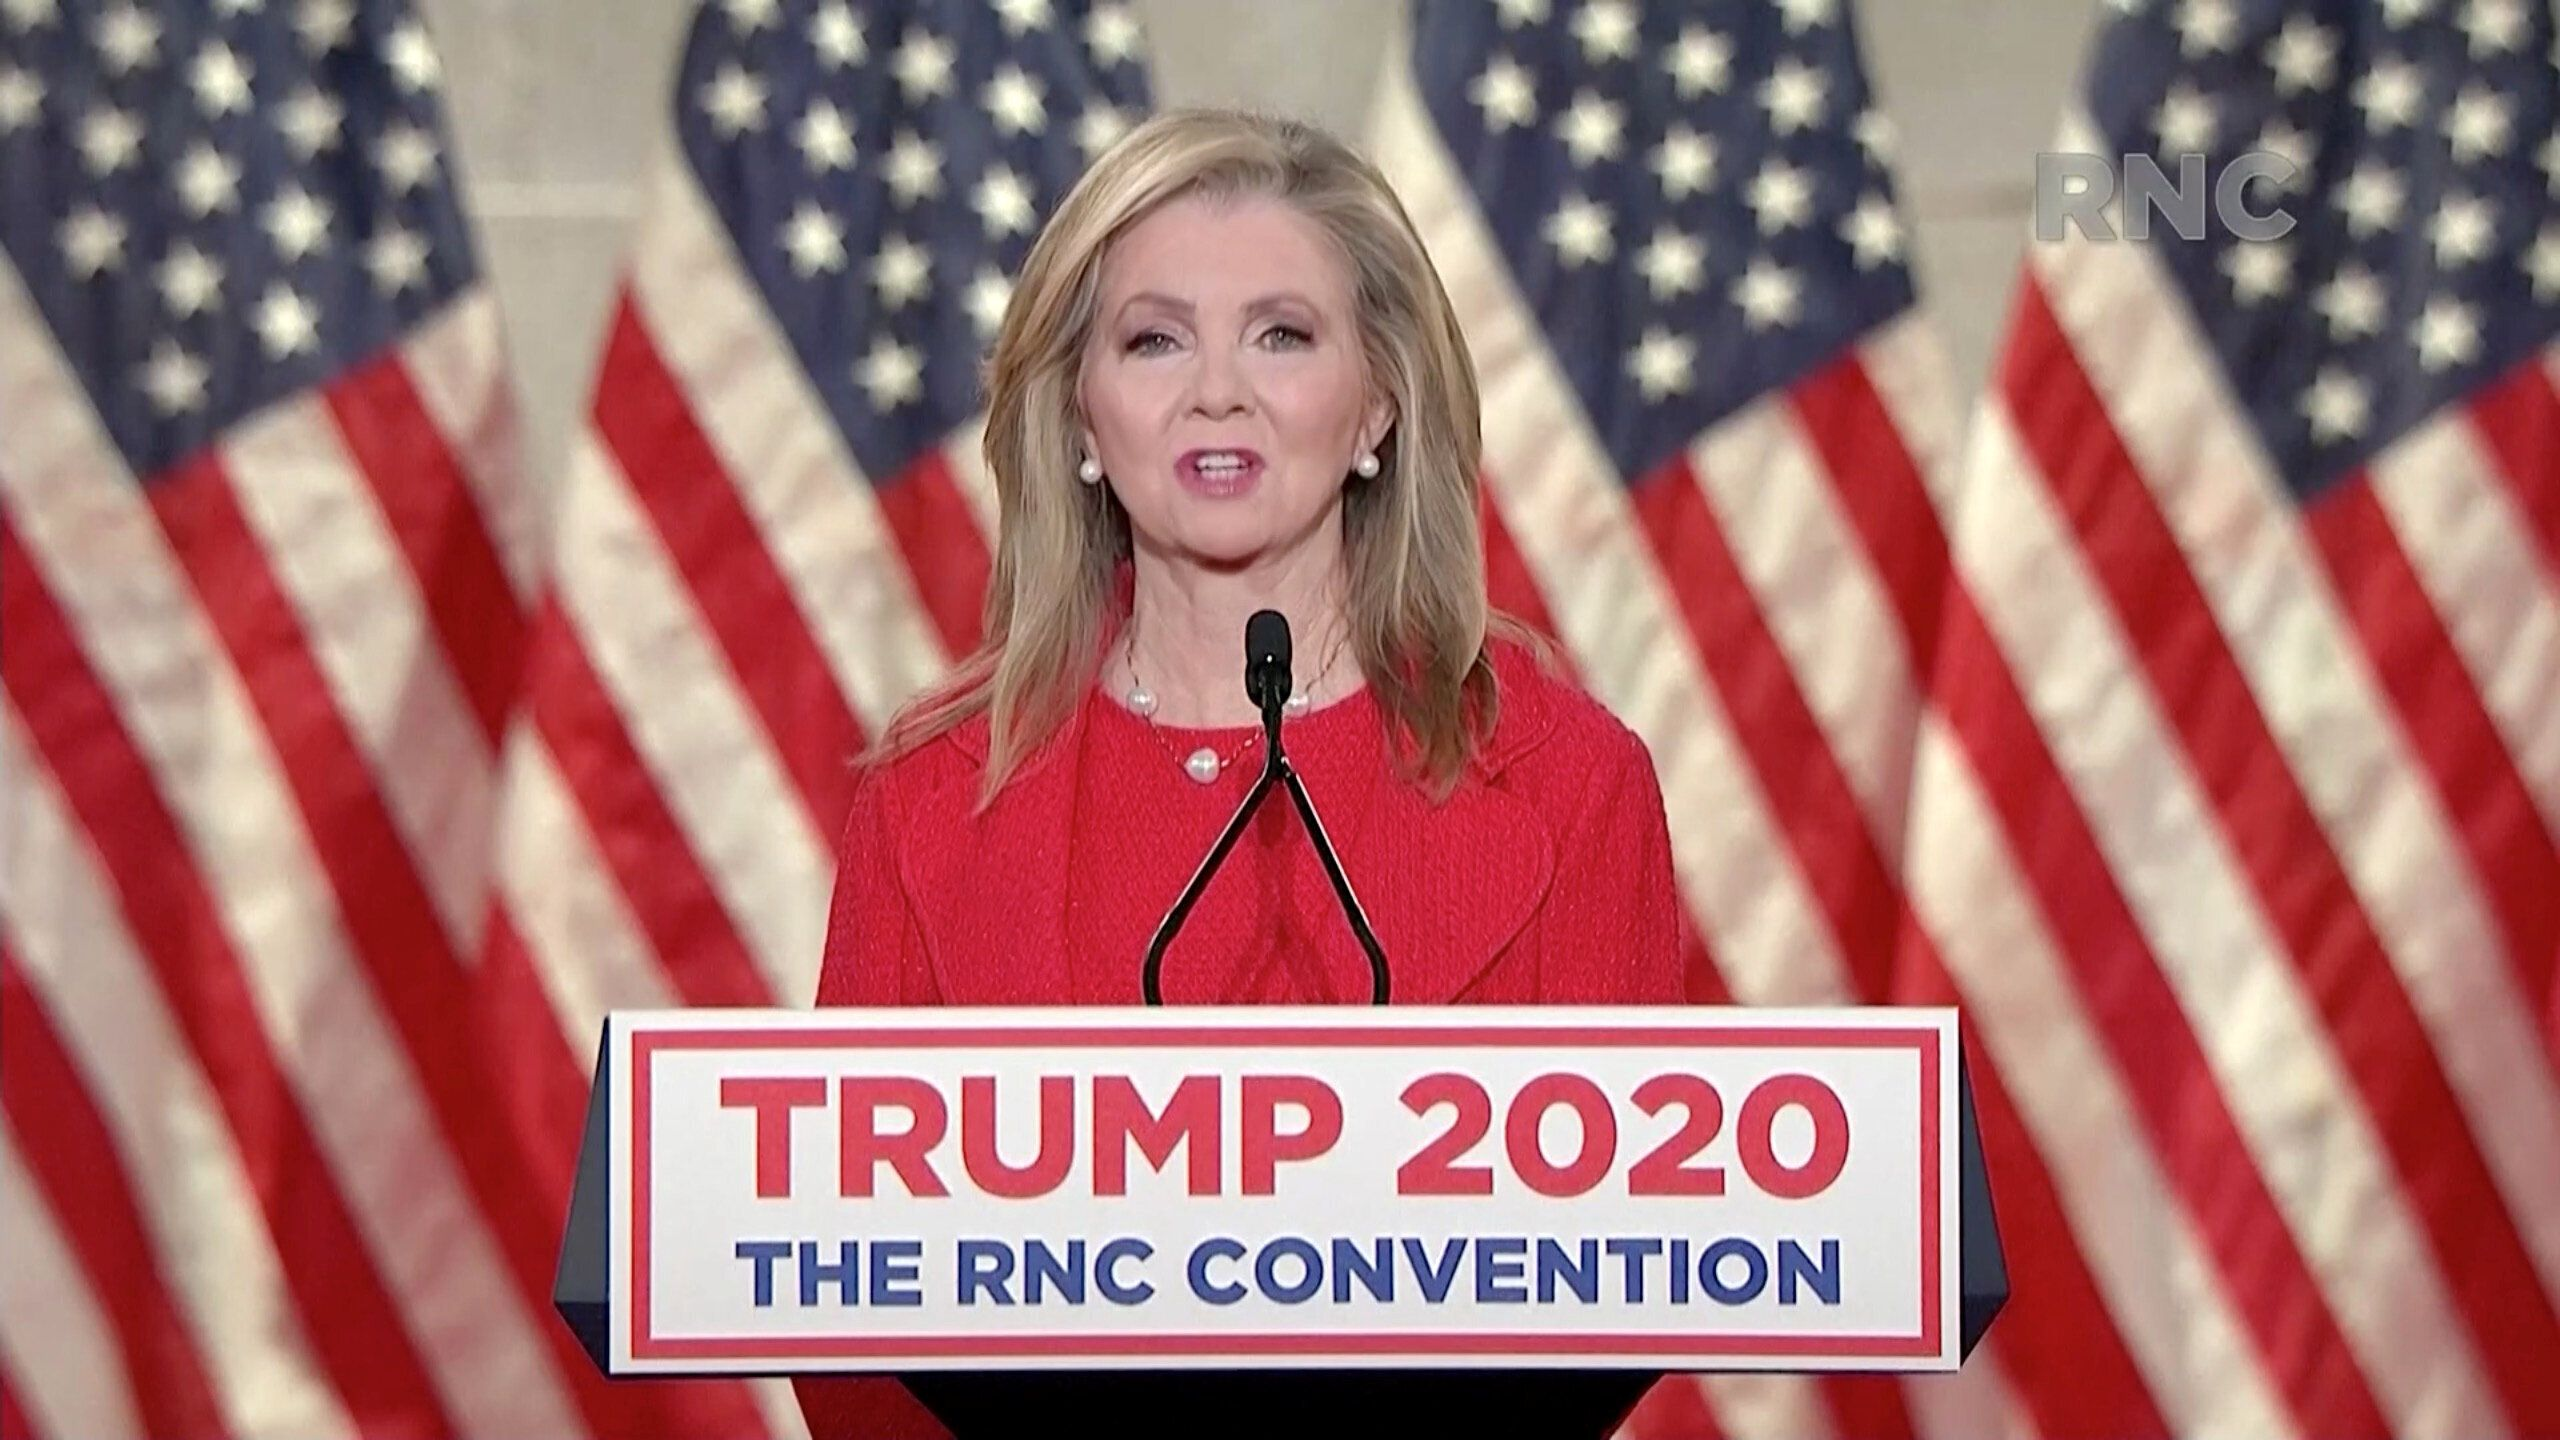 Sen. Marsha Blackburn (R-Tenn.) speaks during the largely virtual 2020 Republican National Convention on Wednesday night. She